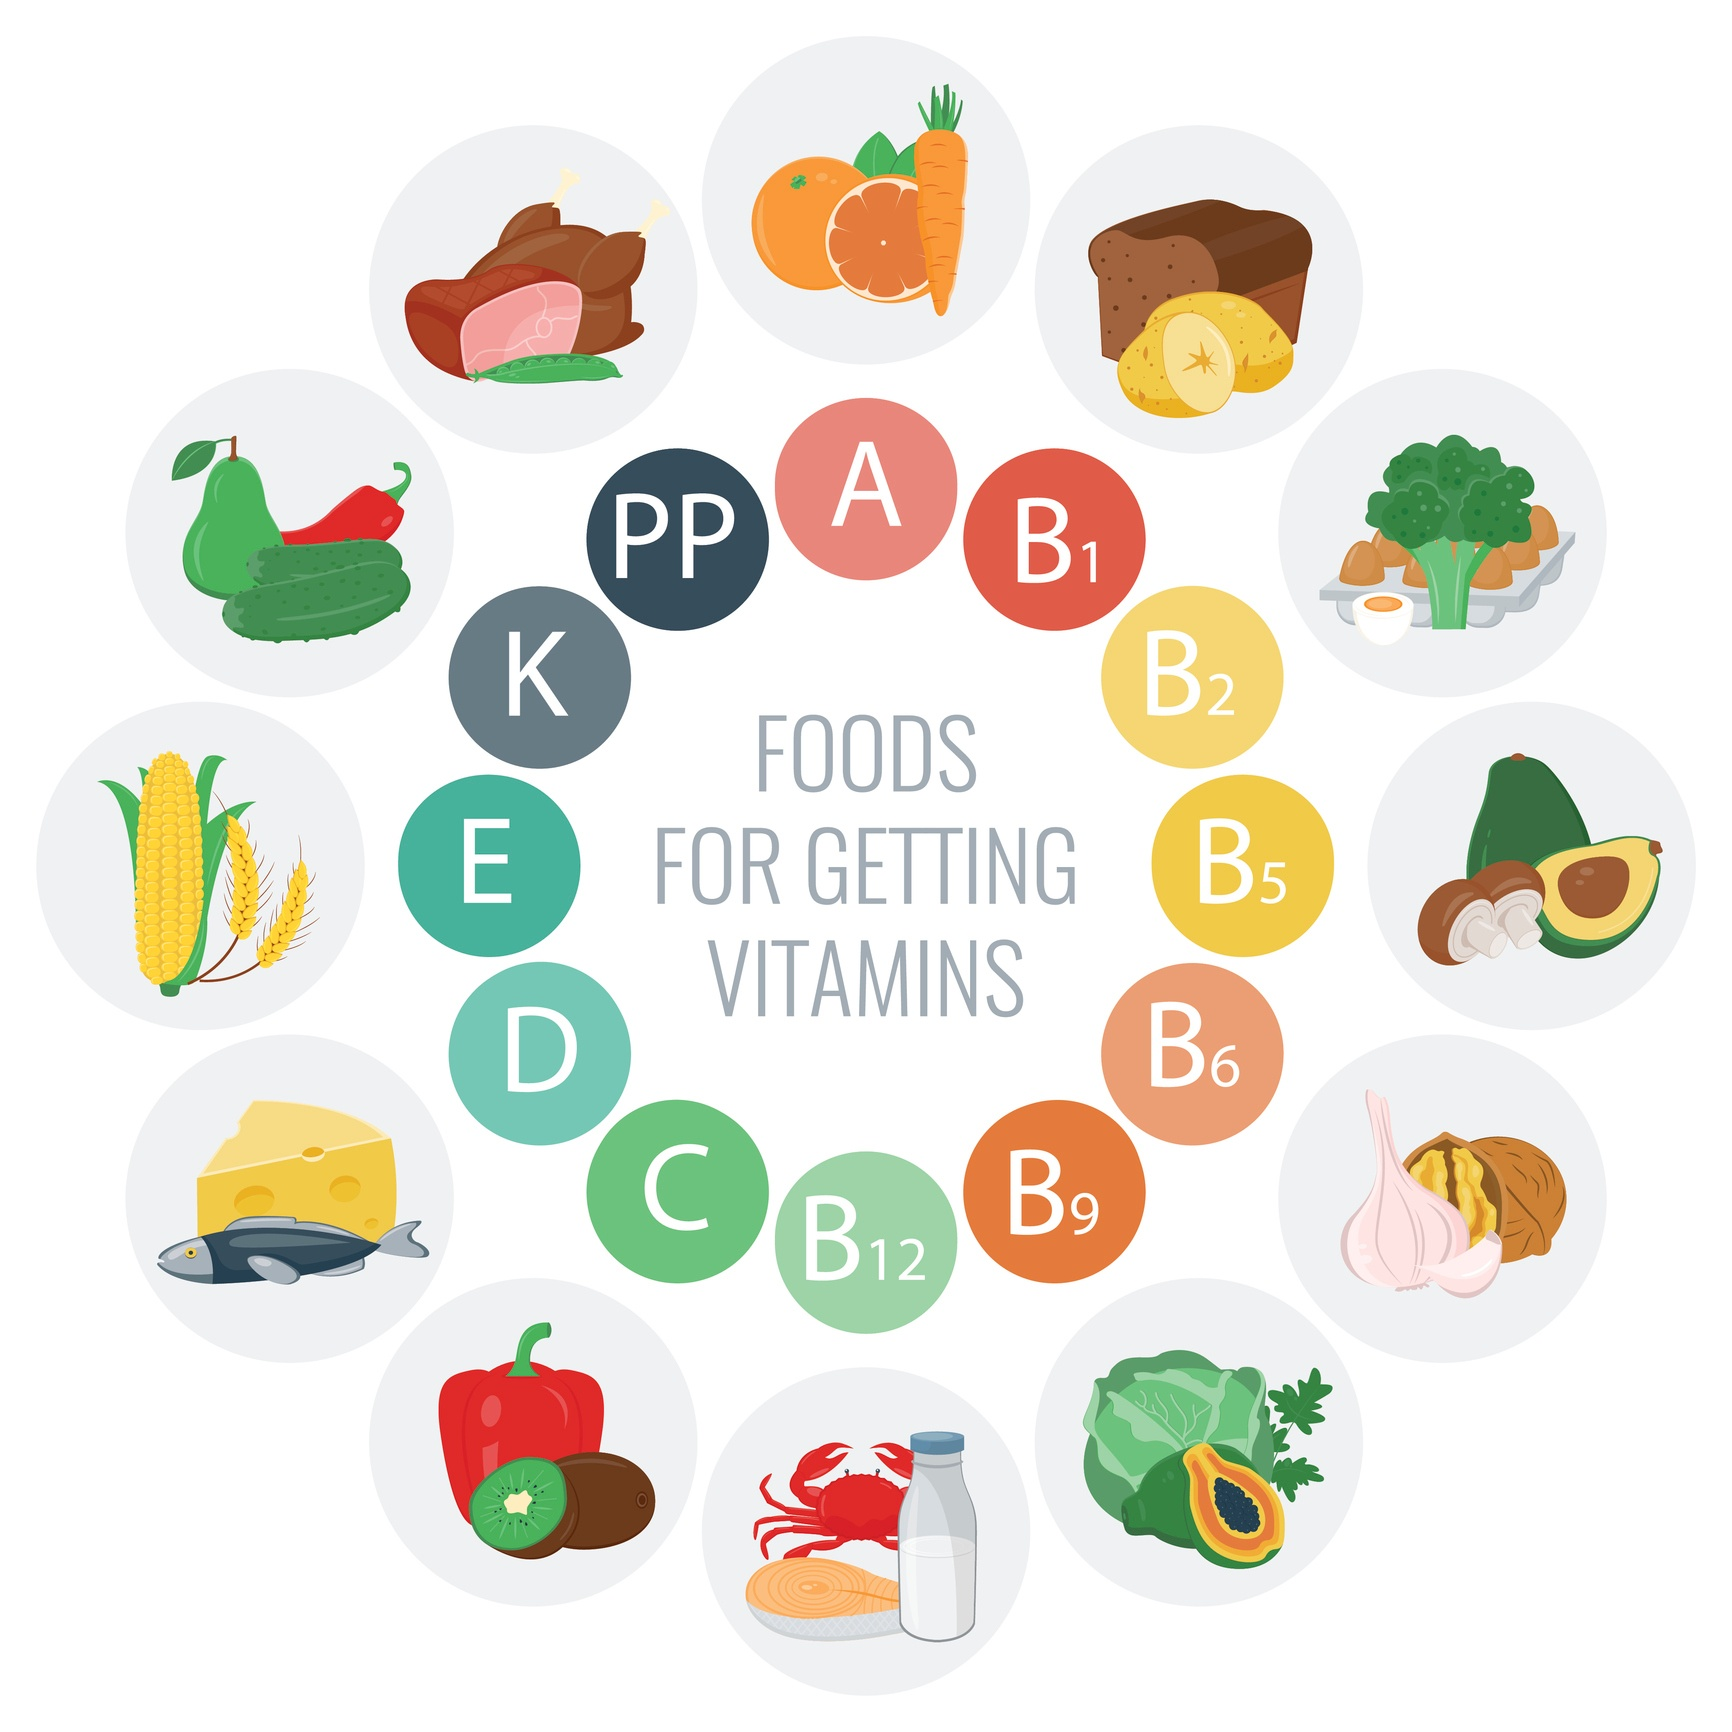 foods for getting vitamins